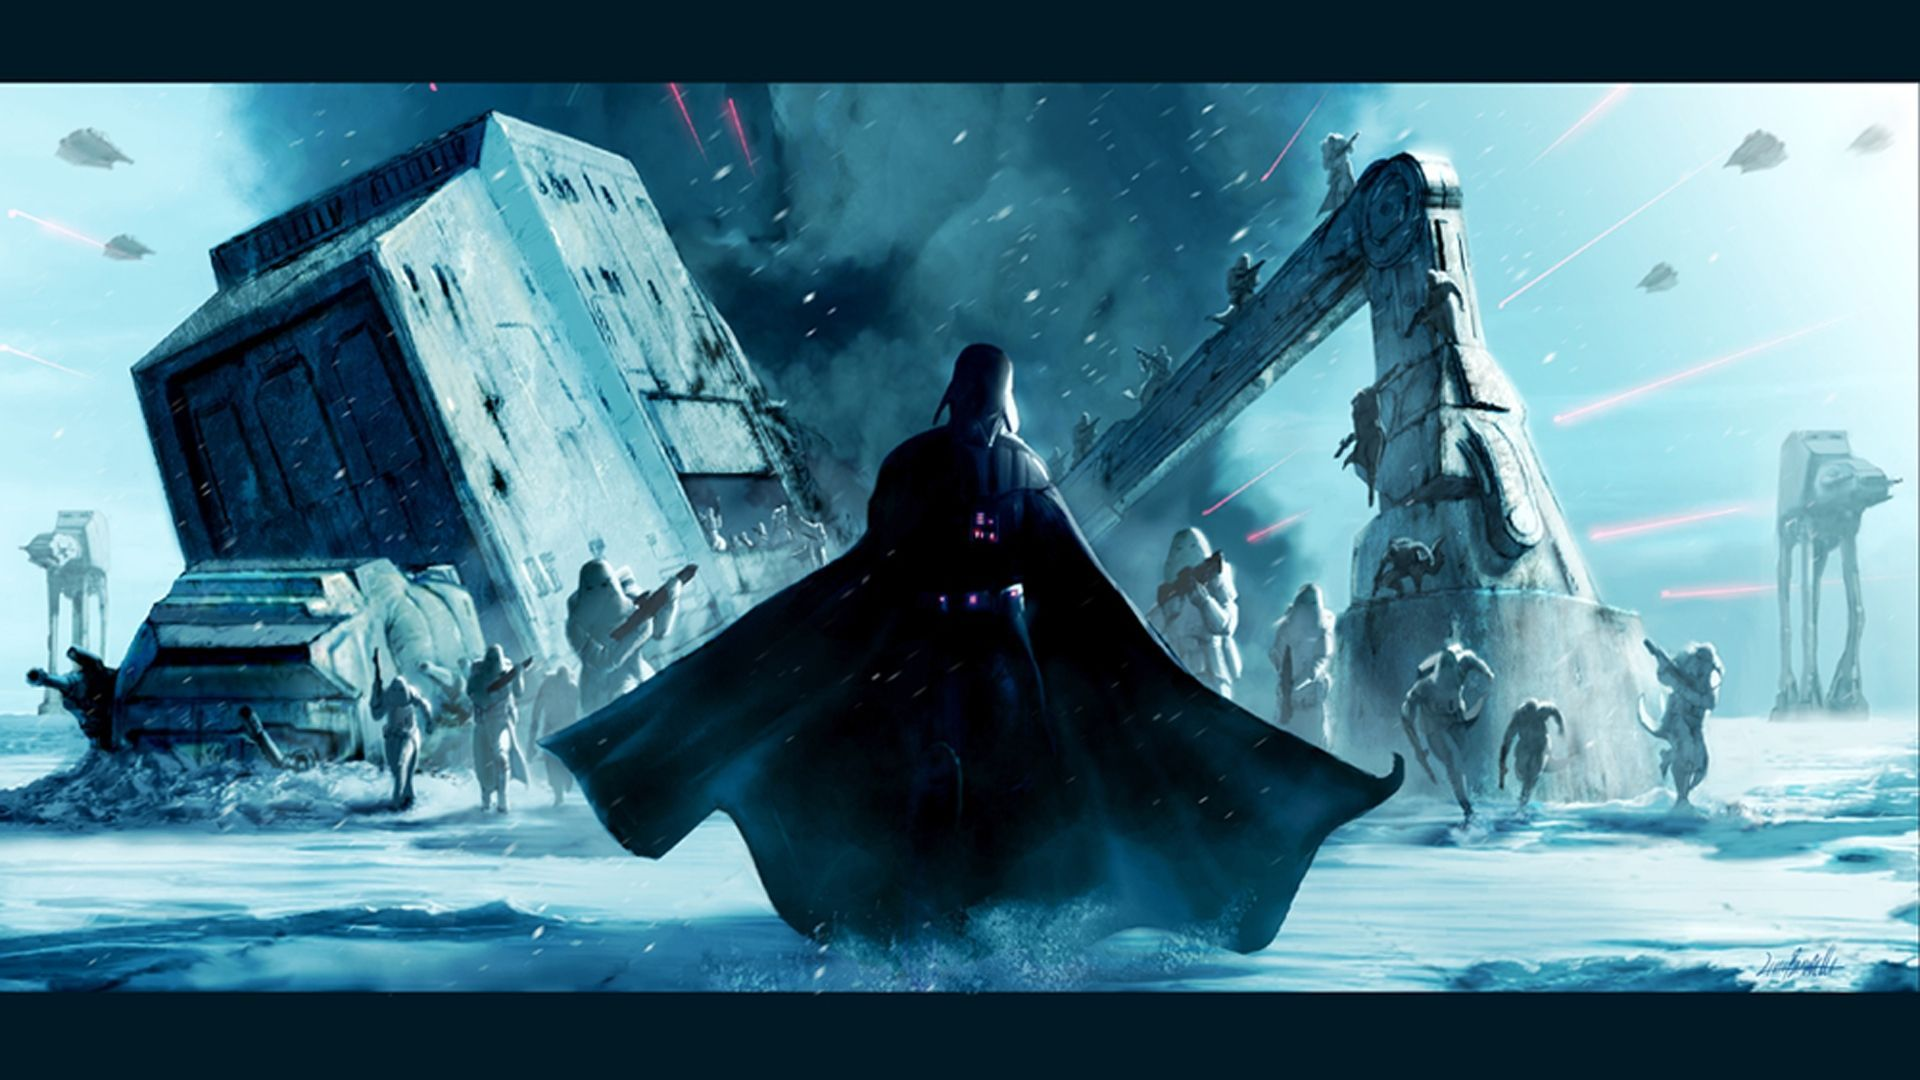 Star Wars Wallpaper Full HD